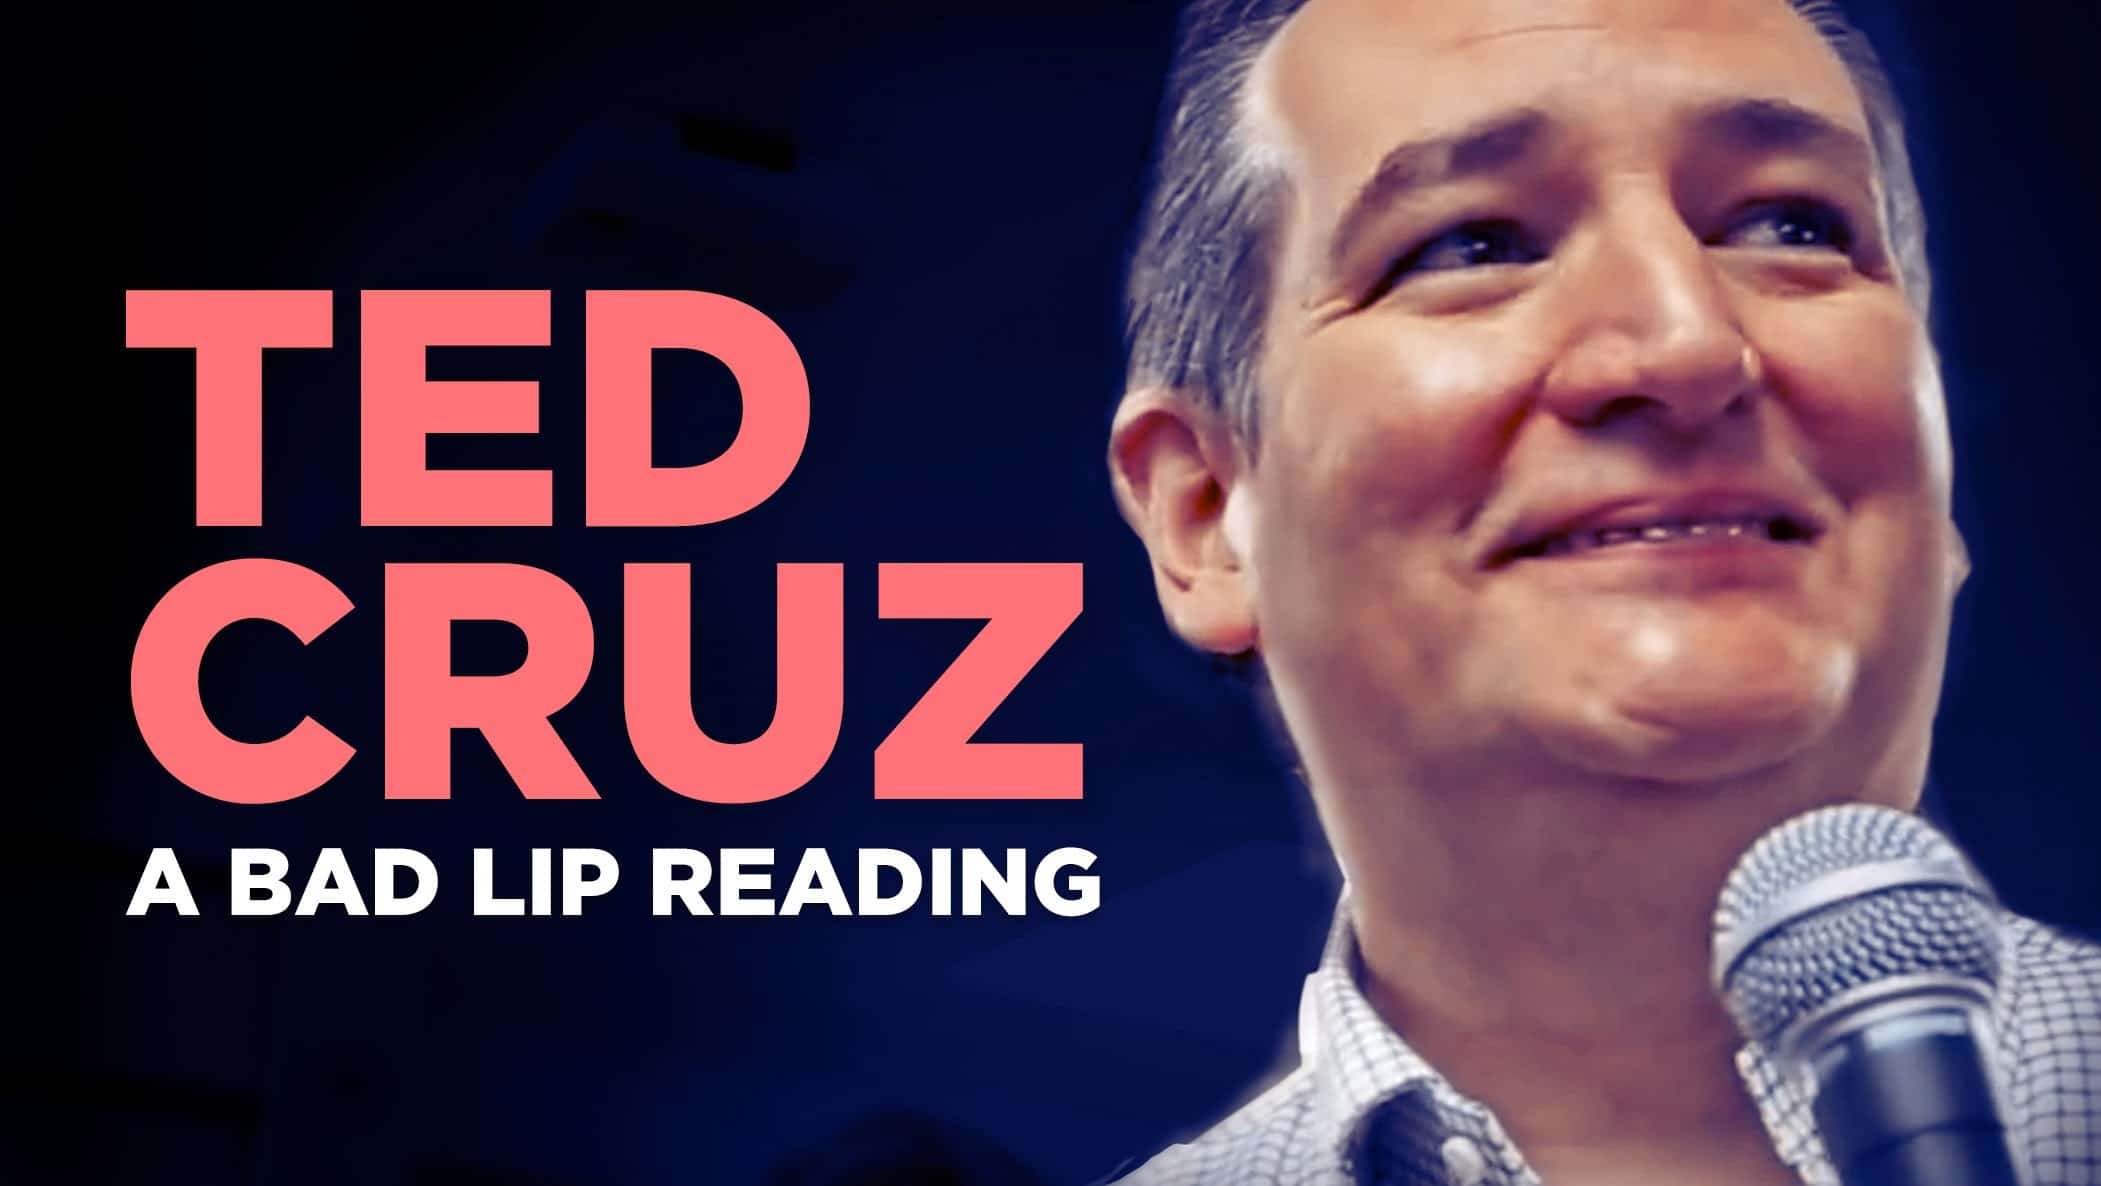 A Bad Lip Reading with Ted Cruz (Video)